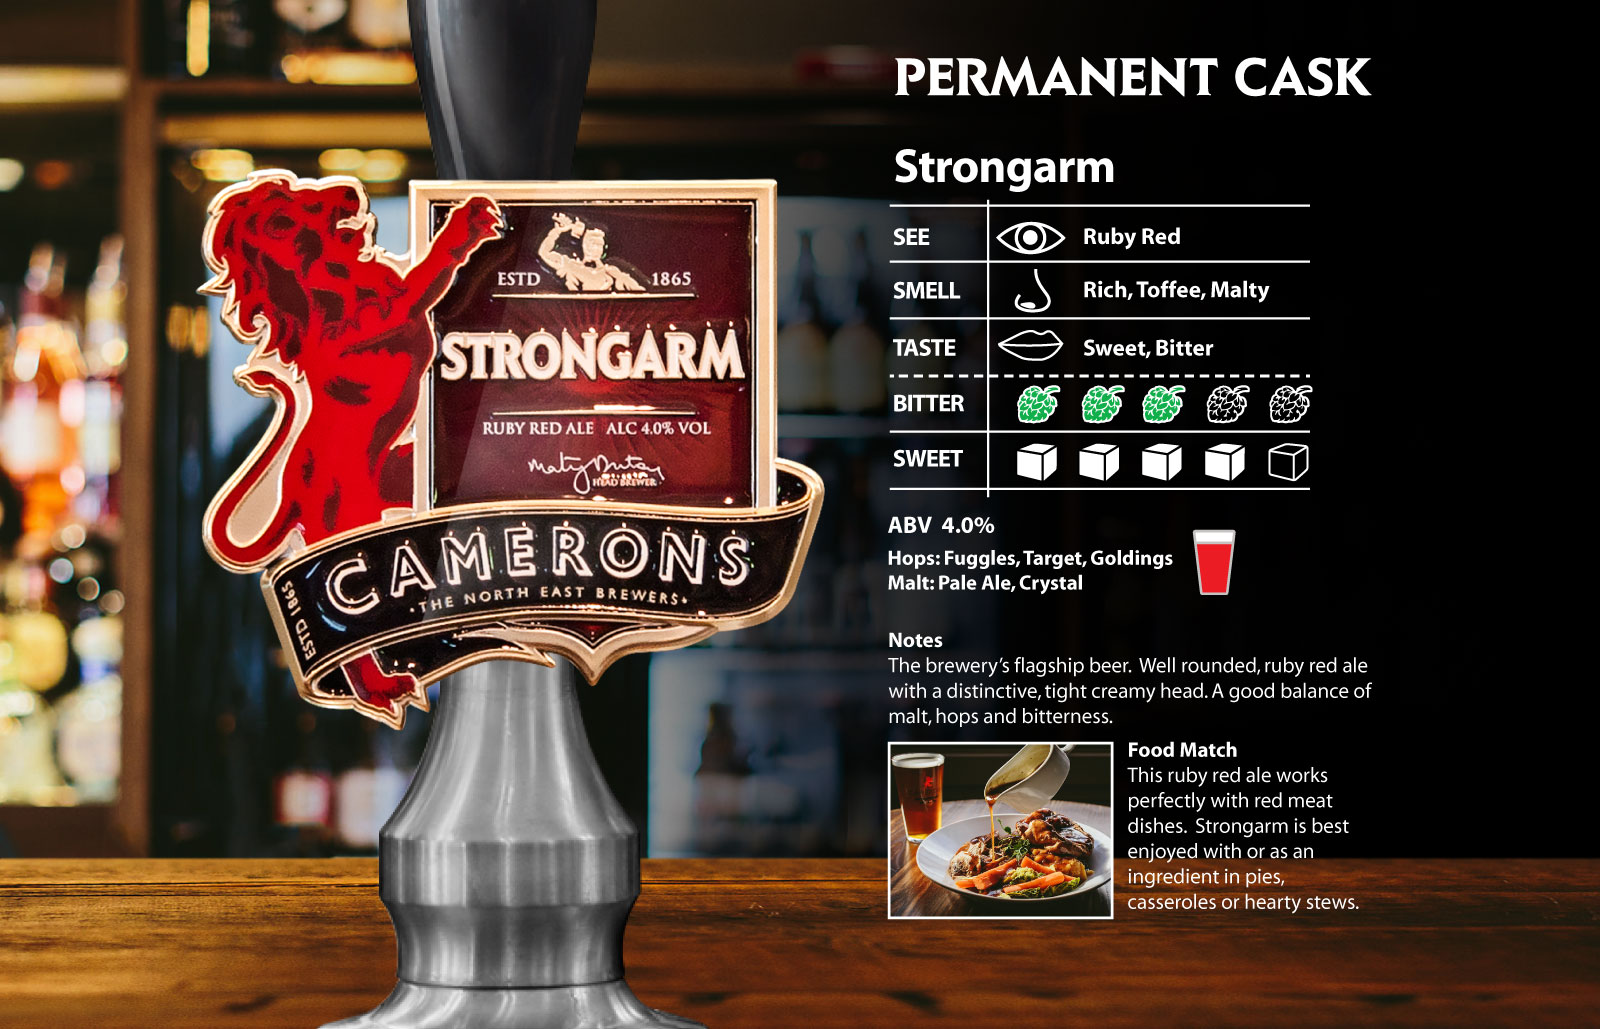 Strongarm - cask - camerons brewery